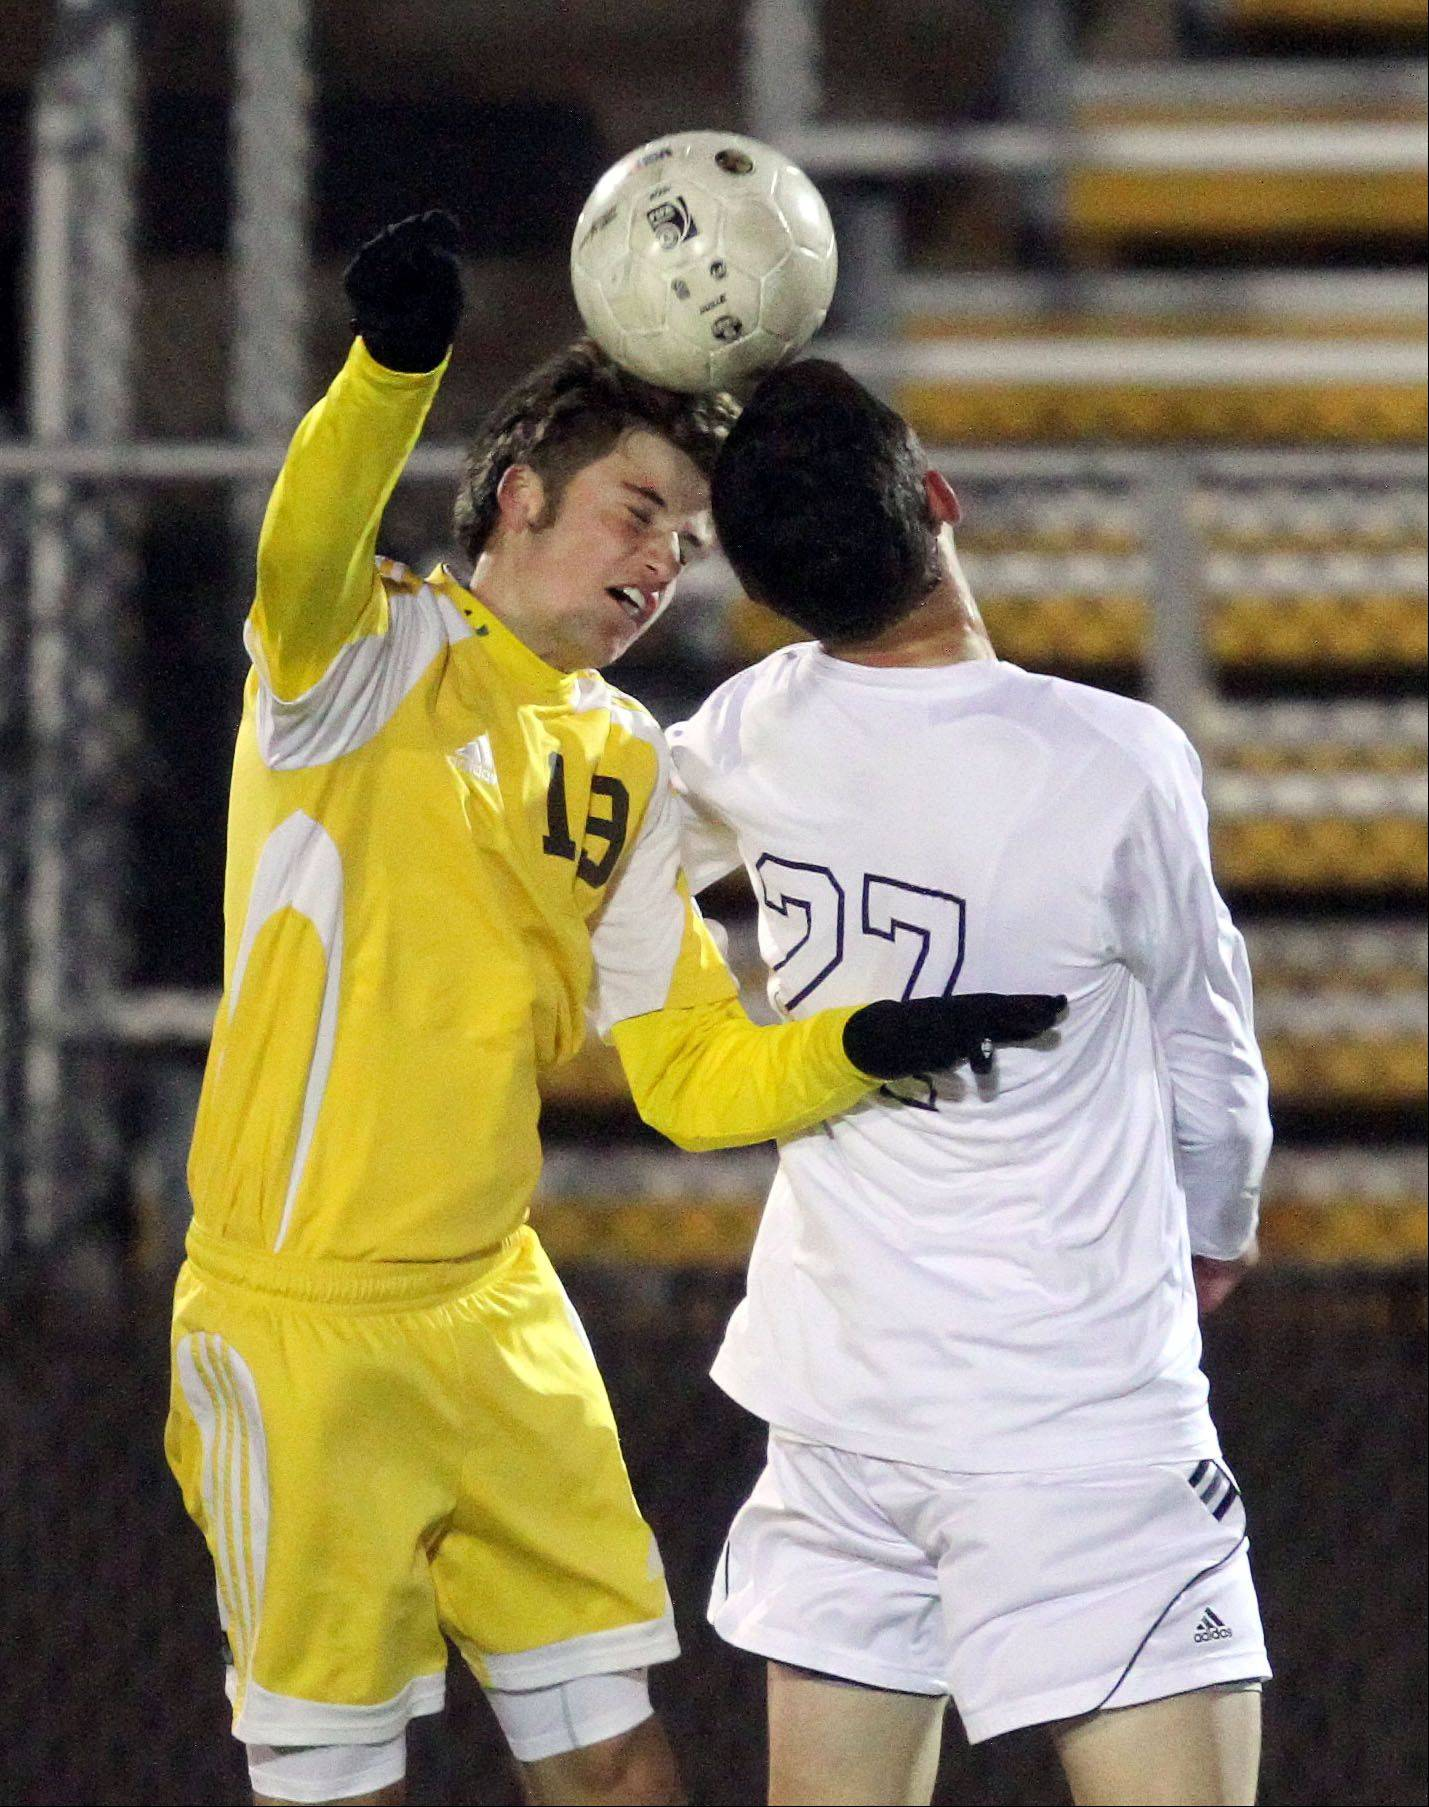 Carmel's Ryan McKernan, left, and St. Viator's Nick Winter go up for a header during regional semifinal action Tuesday night at Carmel Catholic High School.